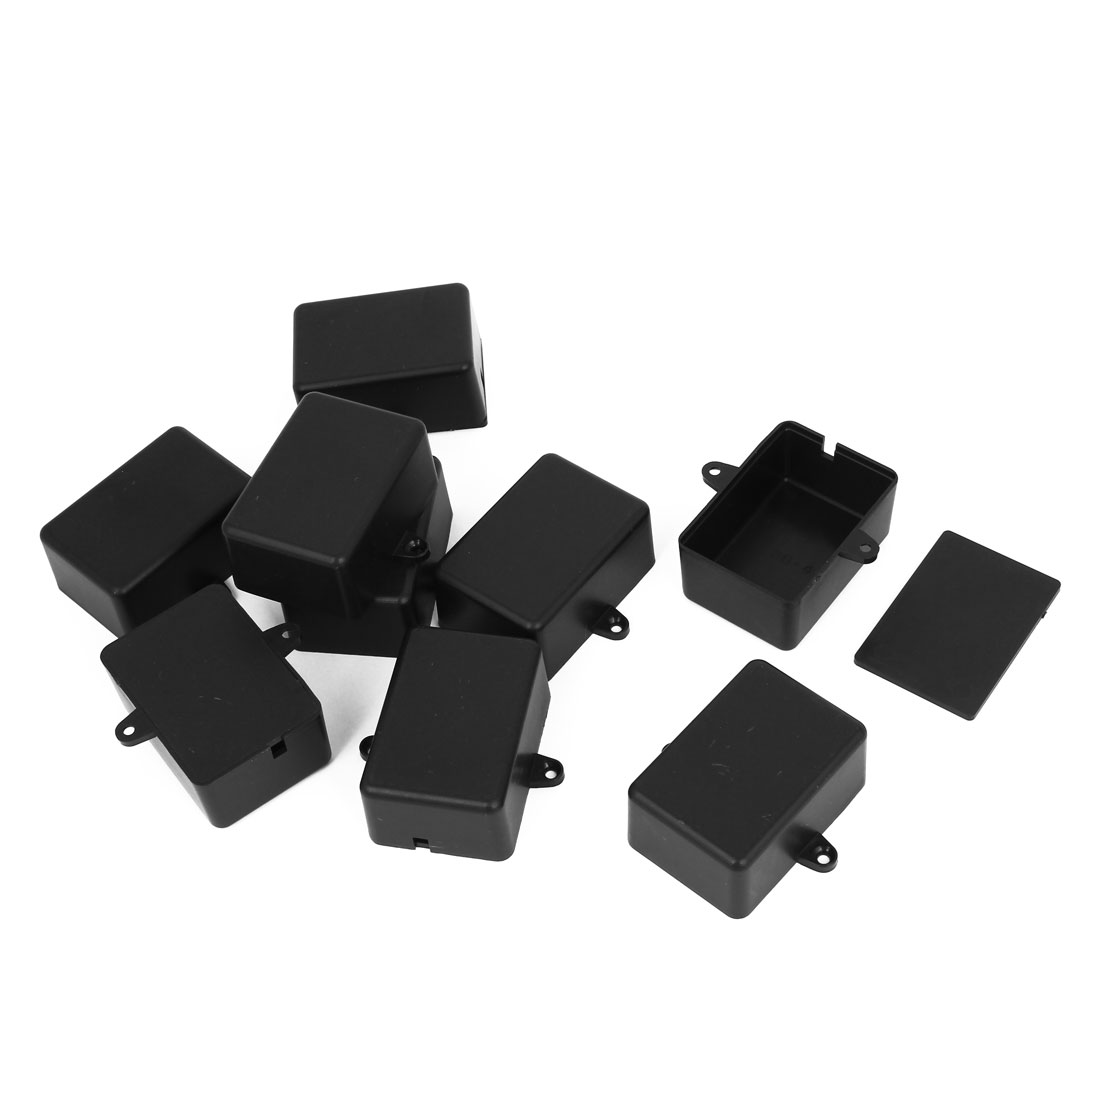 9pcs Surface Mounted Plastic Sealed Electric Junction Box Case Black 52mmx37mmx23mm